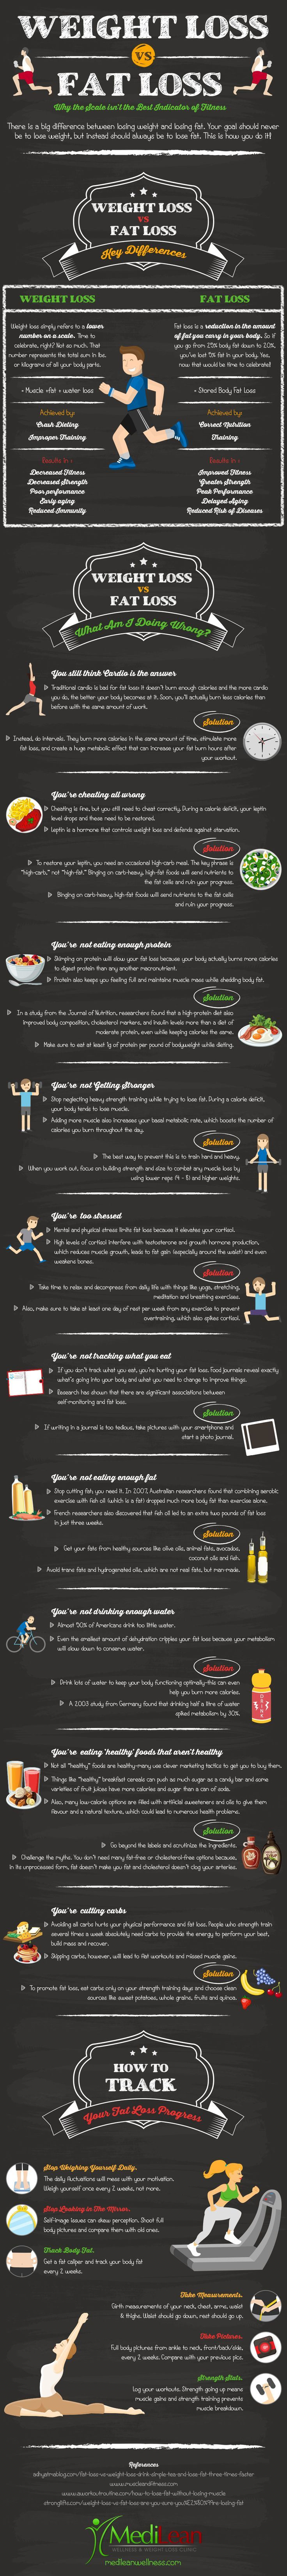 Weight Loss vs Fat Loss: Why Your Scale Isn't the Best Indicator of Fitness – Infographic http://www.erodethefat.com/blog/4offers/